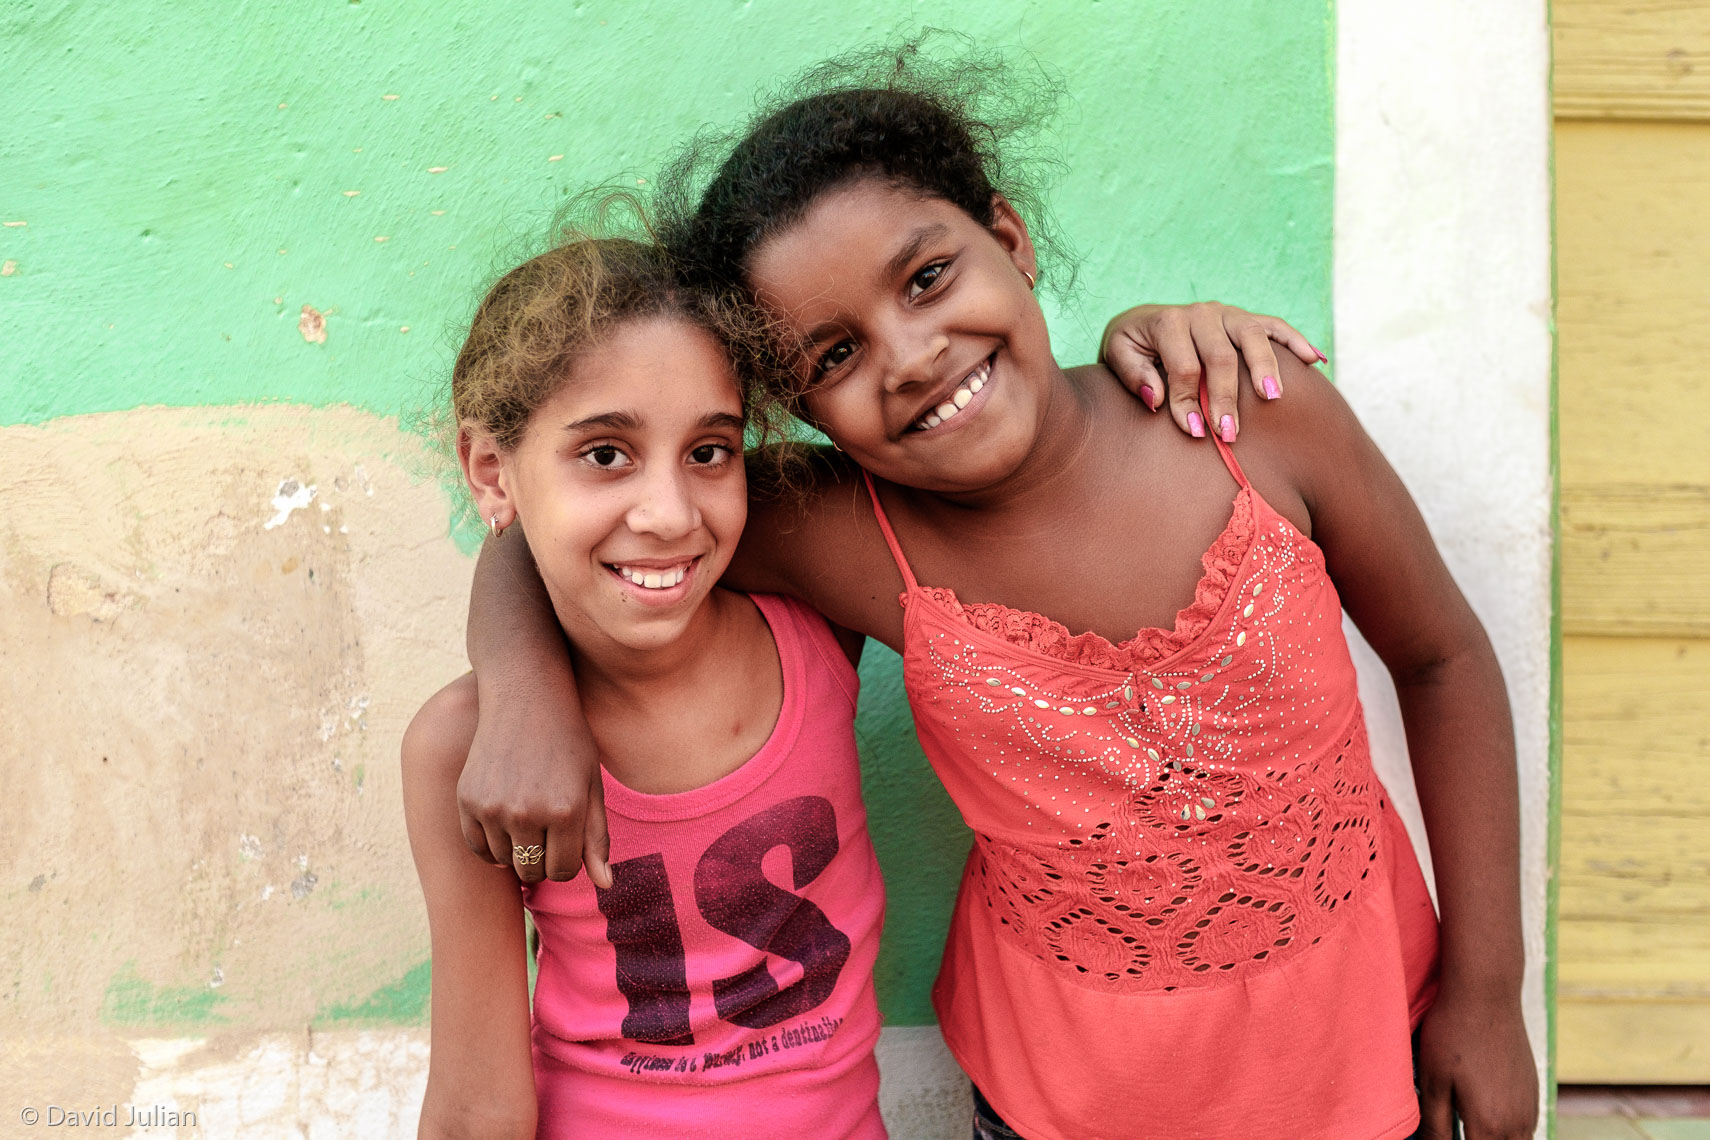 18_CUBA, Trinidad Two Girls, green wall-2688APF1860px